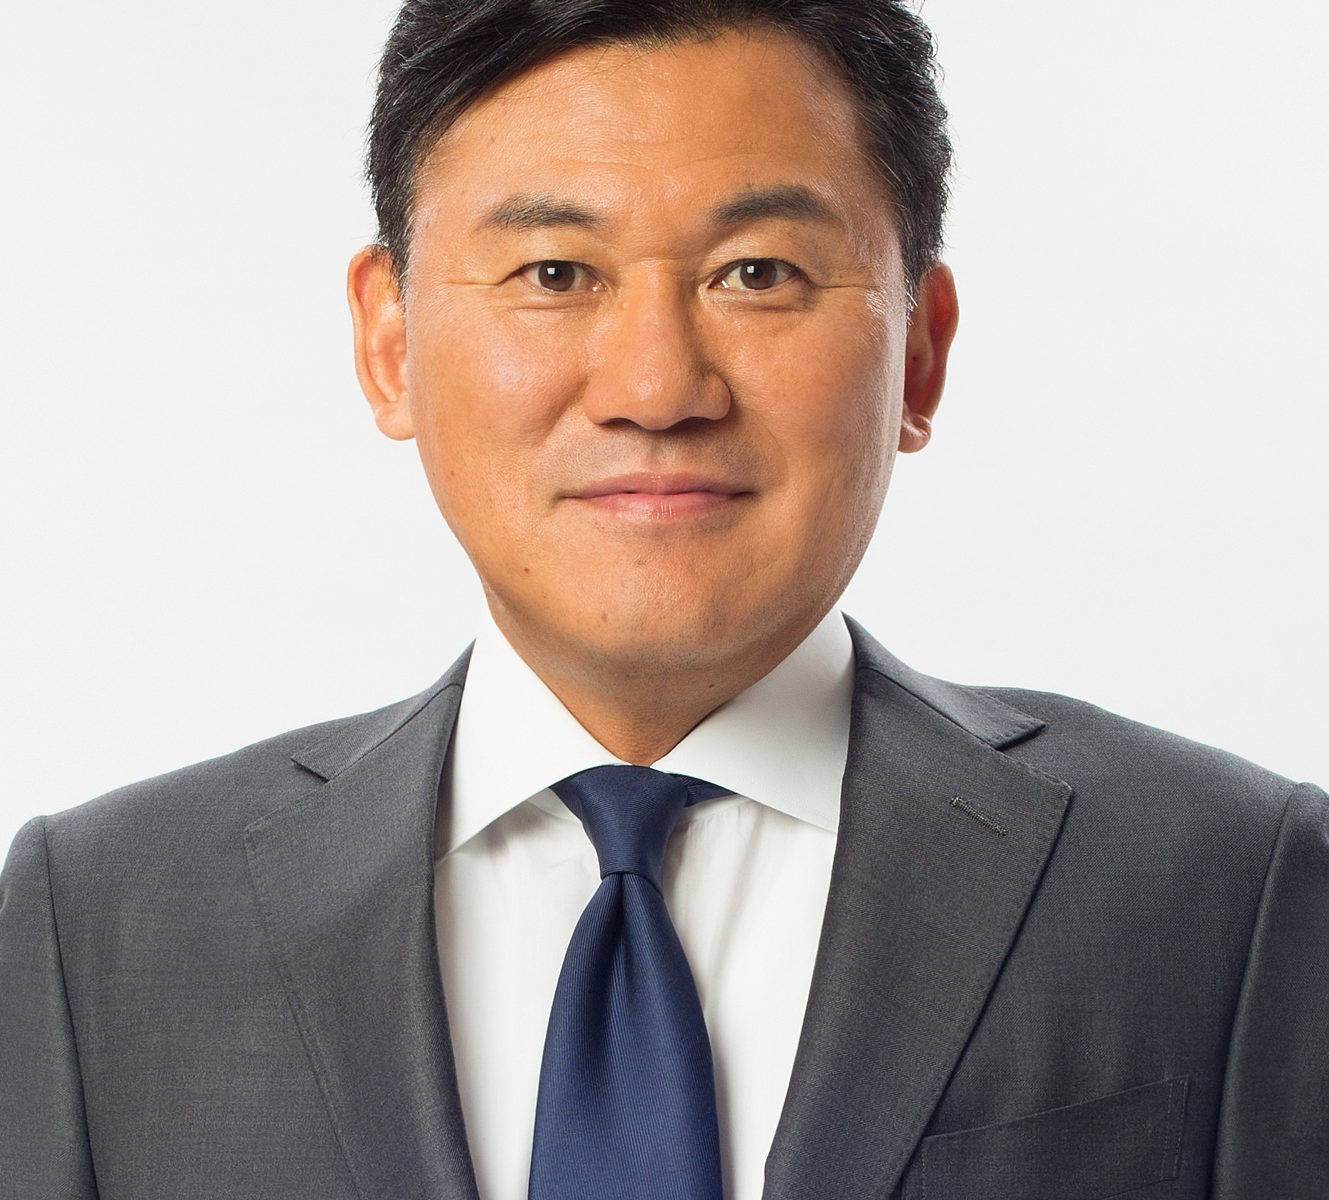 GSG Japan contacts, Hiroshi Mikitani, Founder, Chairman and CEO of Rakuten